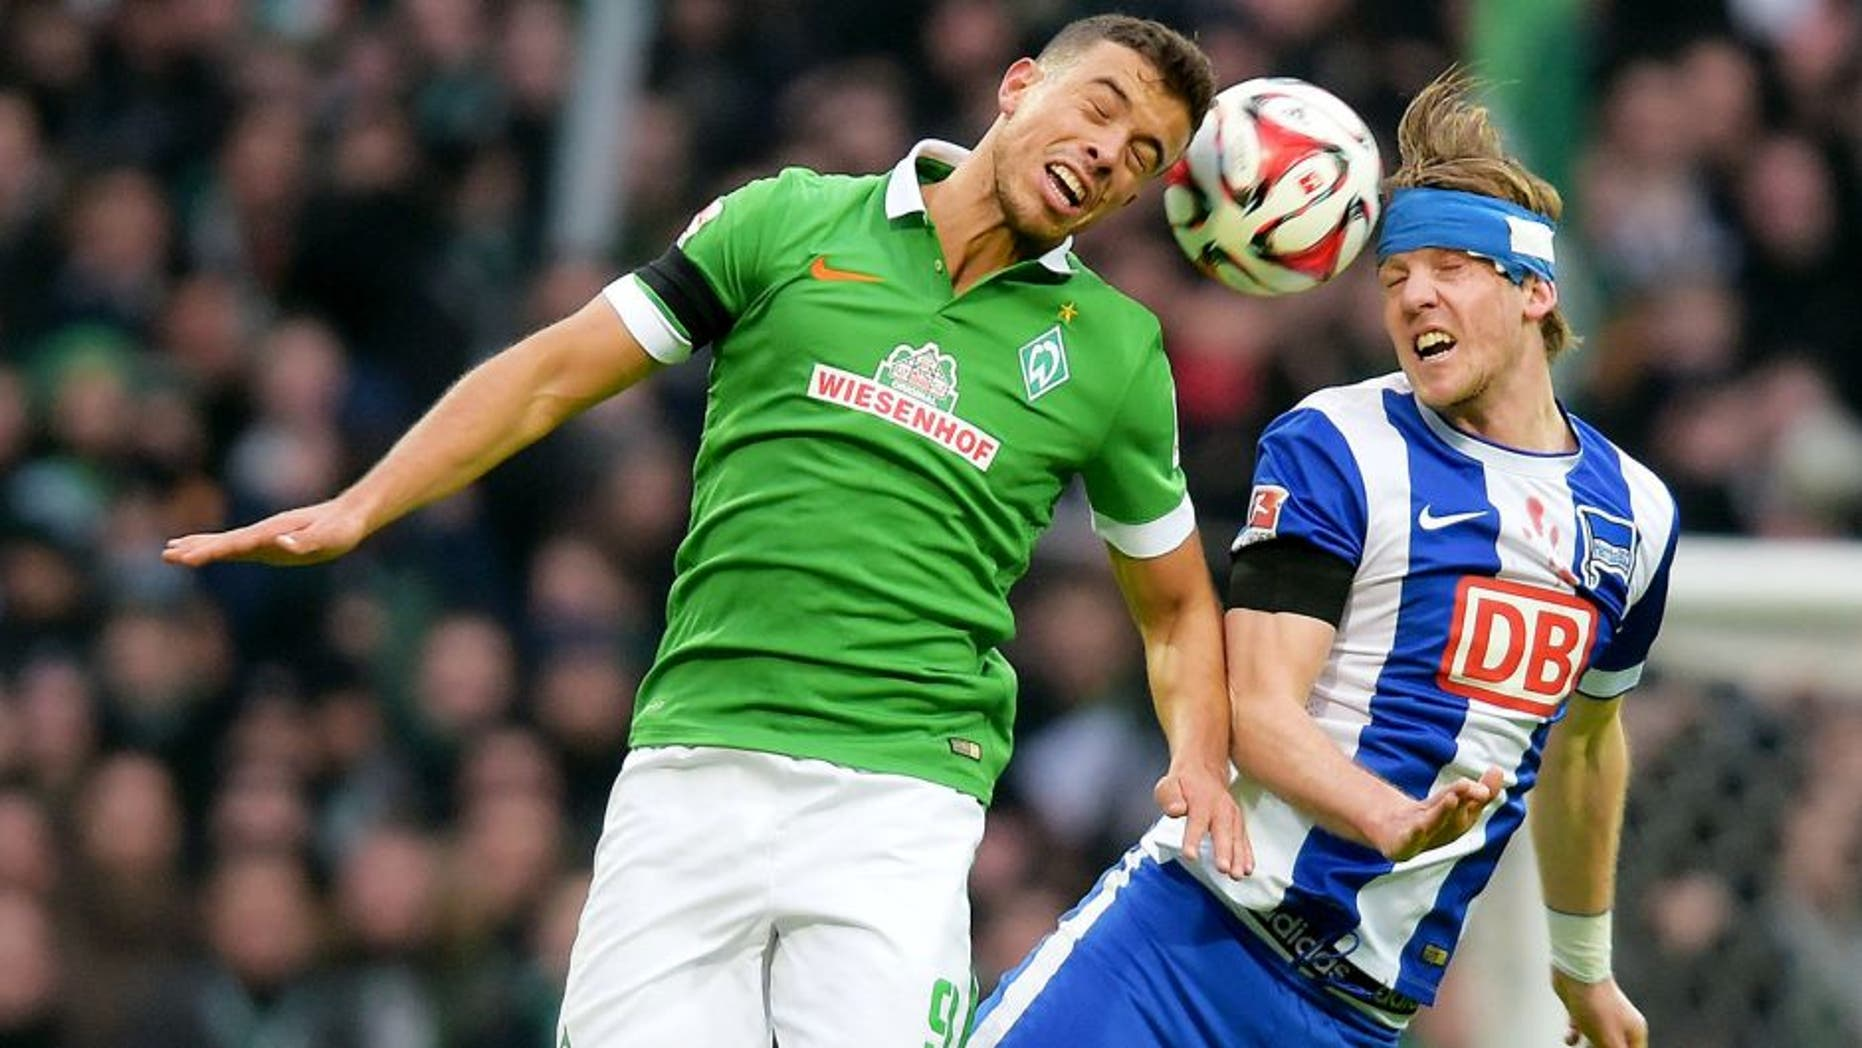 BREMEN, GERMANY - FEBRUARY 01: Franco Di Santo of Werder Bremen and Peter Niemeyer of Hertha BSC go up for a header during the game between Werder Bremen and Hertha BSC on february 1, 2015 in Bremen, Germany. (Photo by Marco Leipold/City-Press via Getty Images)